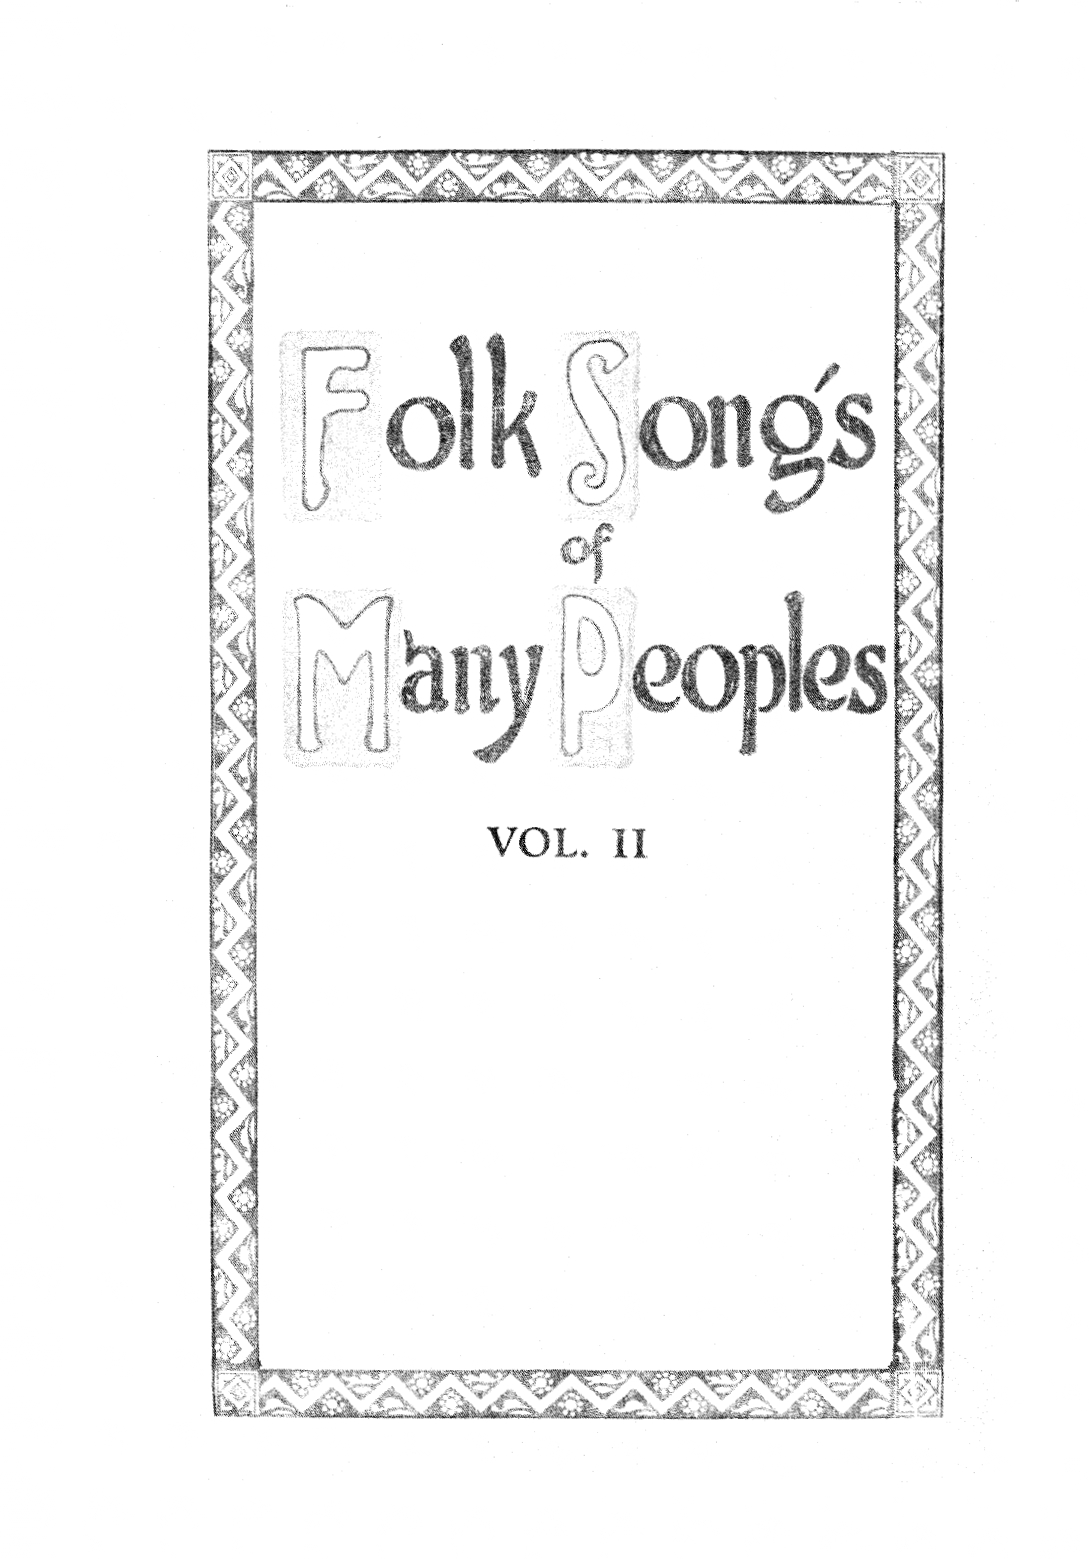 O Mother Mine, I Wandered Among the Mountains, Three Maiden Lovers [Three Lebanese Folk Poems Translated from the Arabic], Folk Songs of Many Peoples, Vol. II, New York: The Woman's Press, 1922